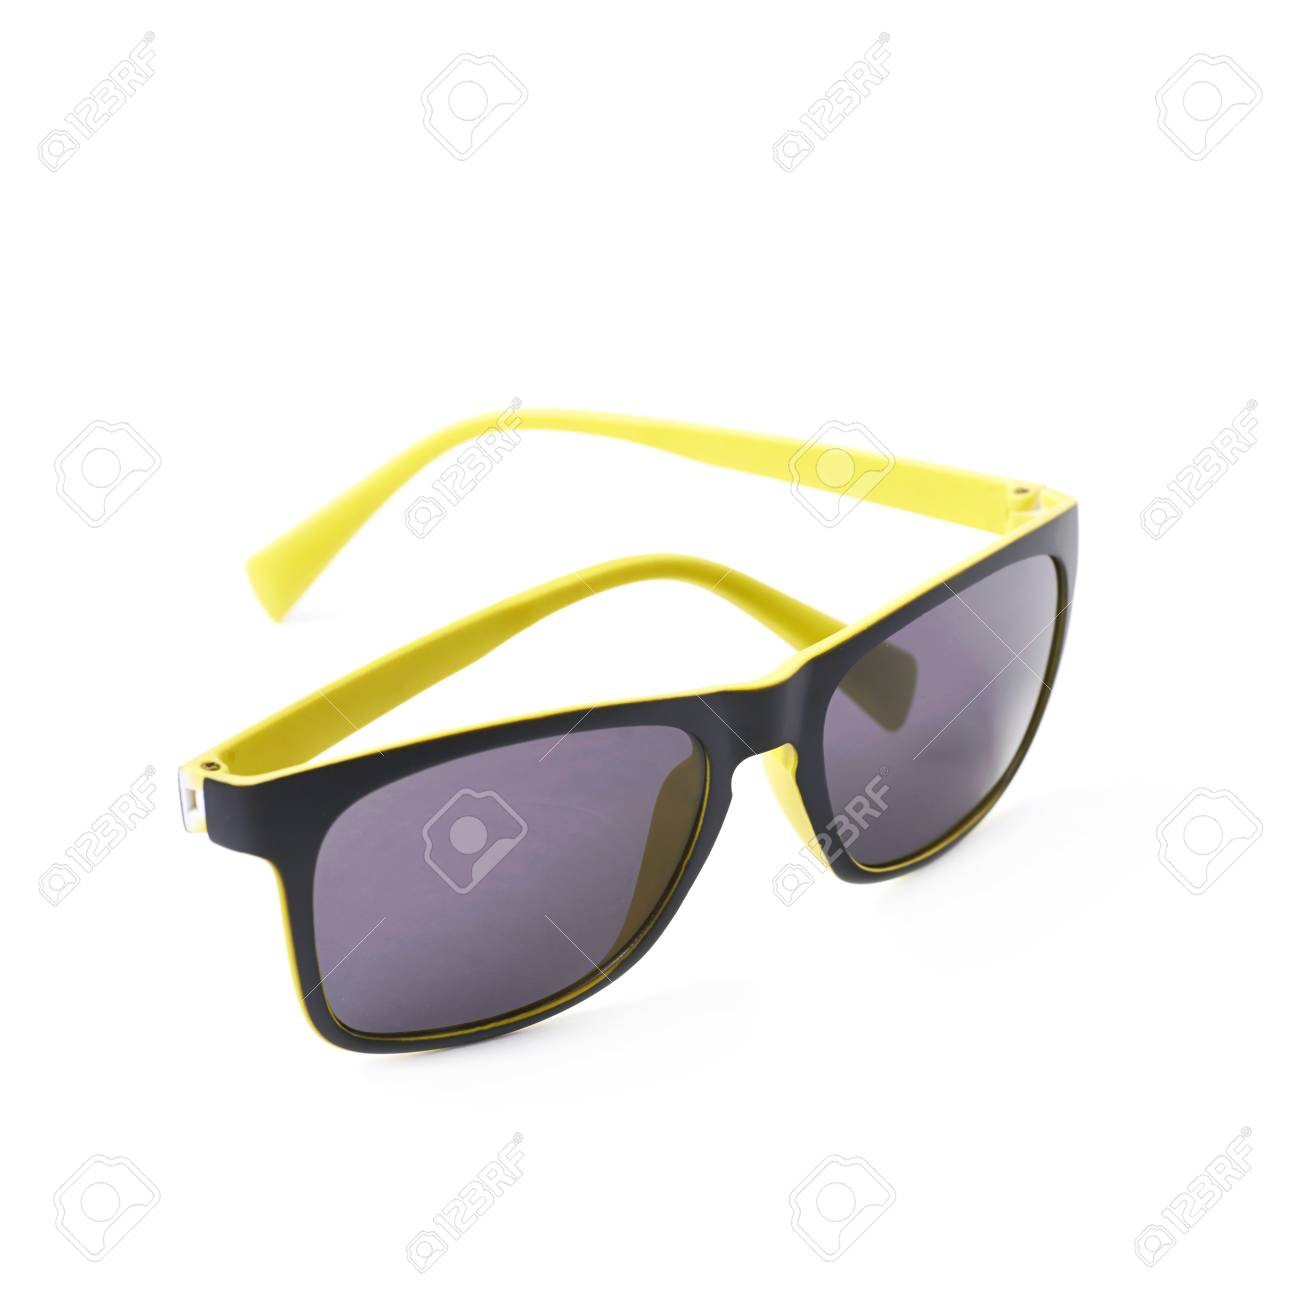 Pair Of Yellow Plastic Sunglasses With The Dark Shades Composition Stock Photo Picture And Royalty Free Image Image 60990414